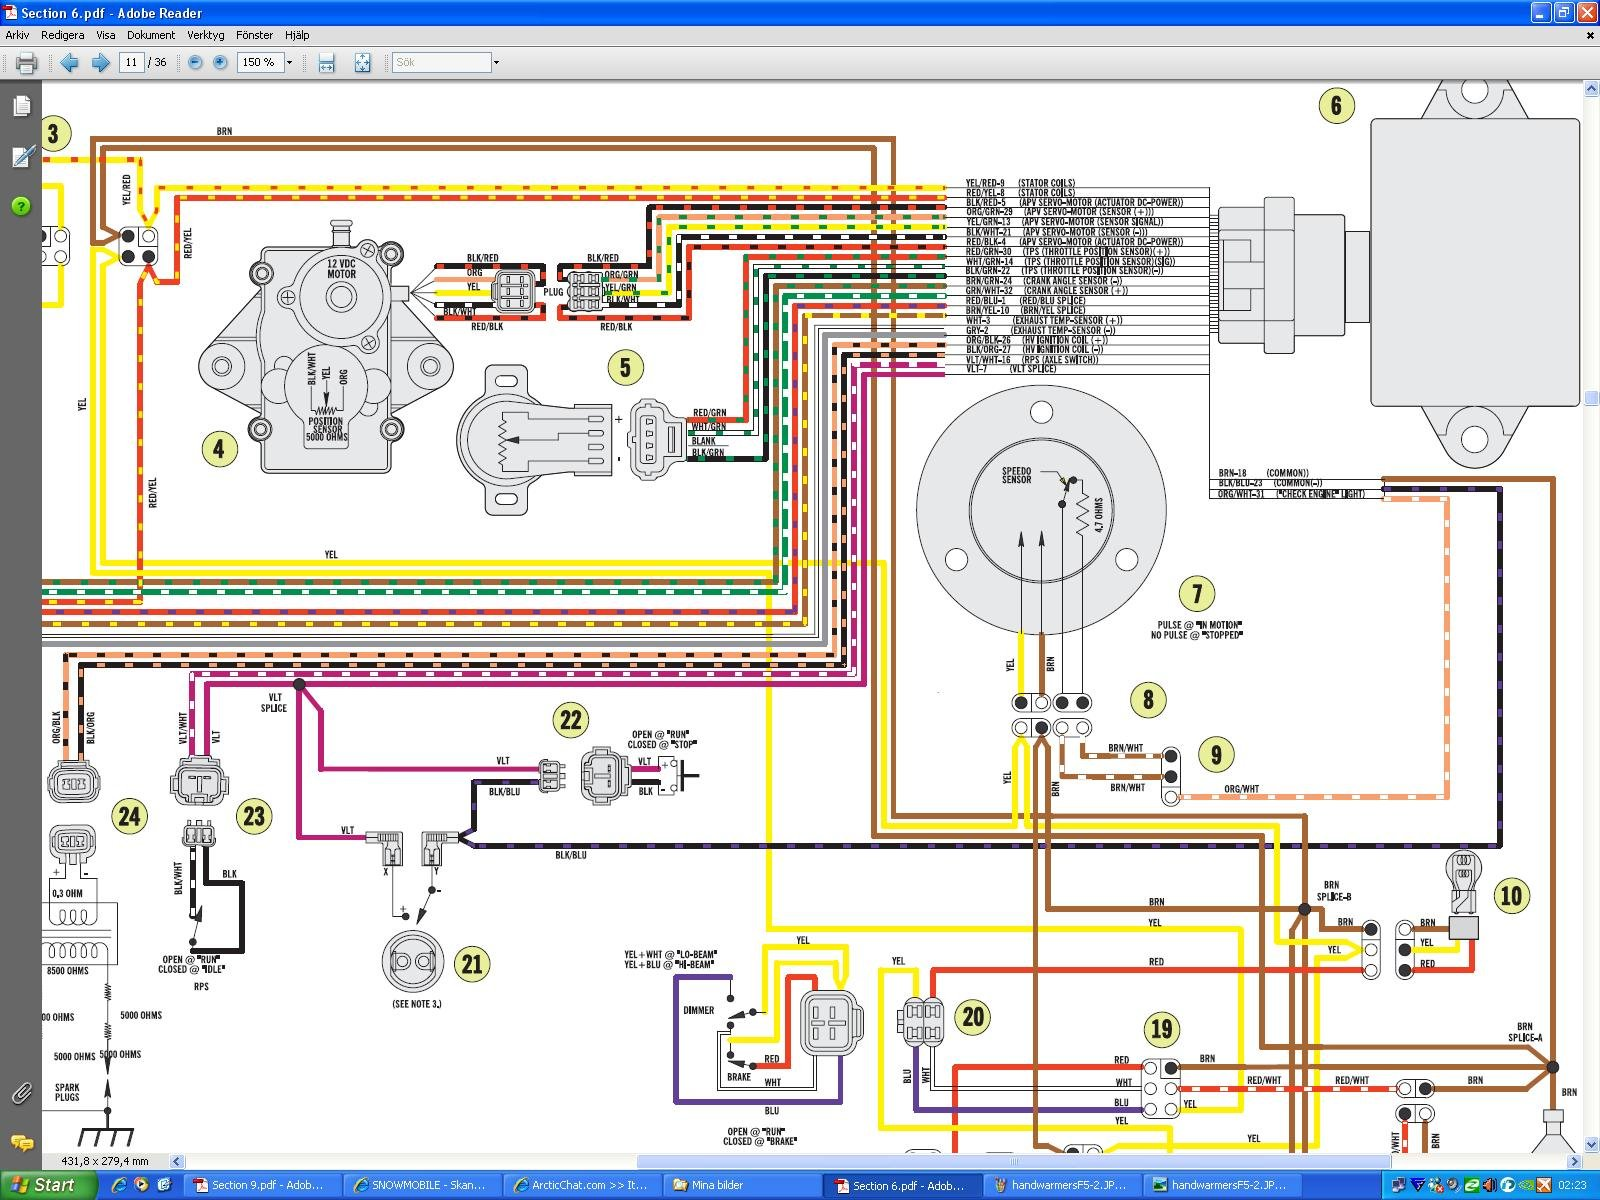 hight resolution of kawasaki f7 wiring diagram wiring diagram dataf7 kawasaki wiring diagrams wiring diagrams lol kawasaki f7 175